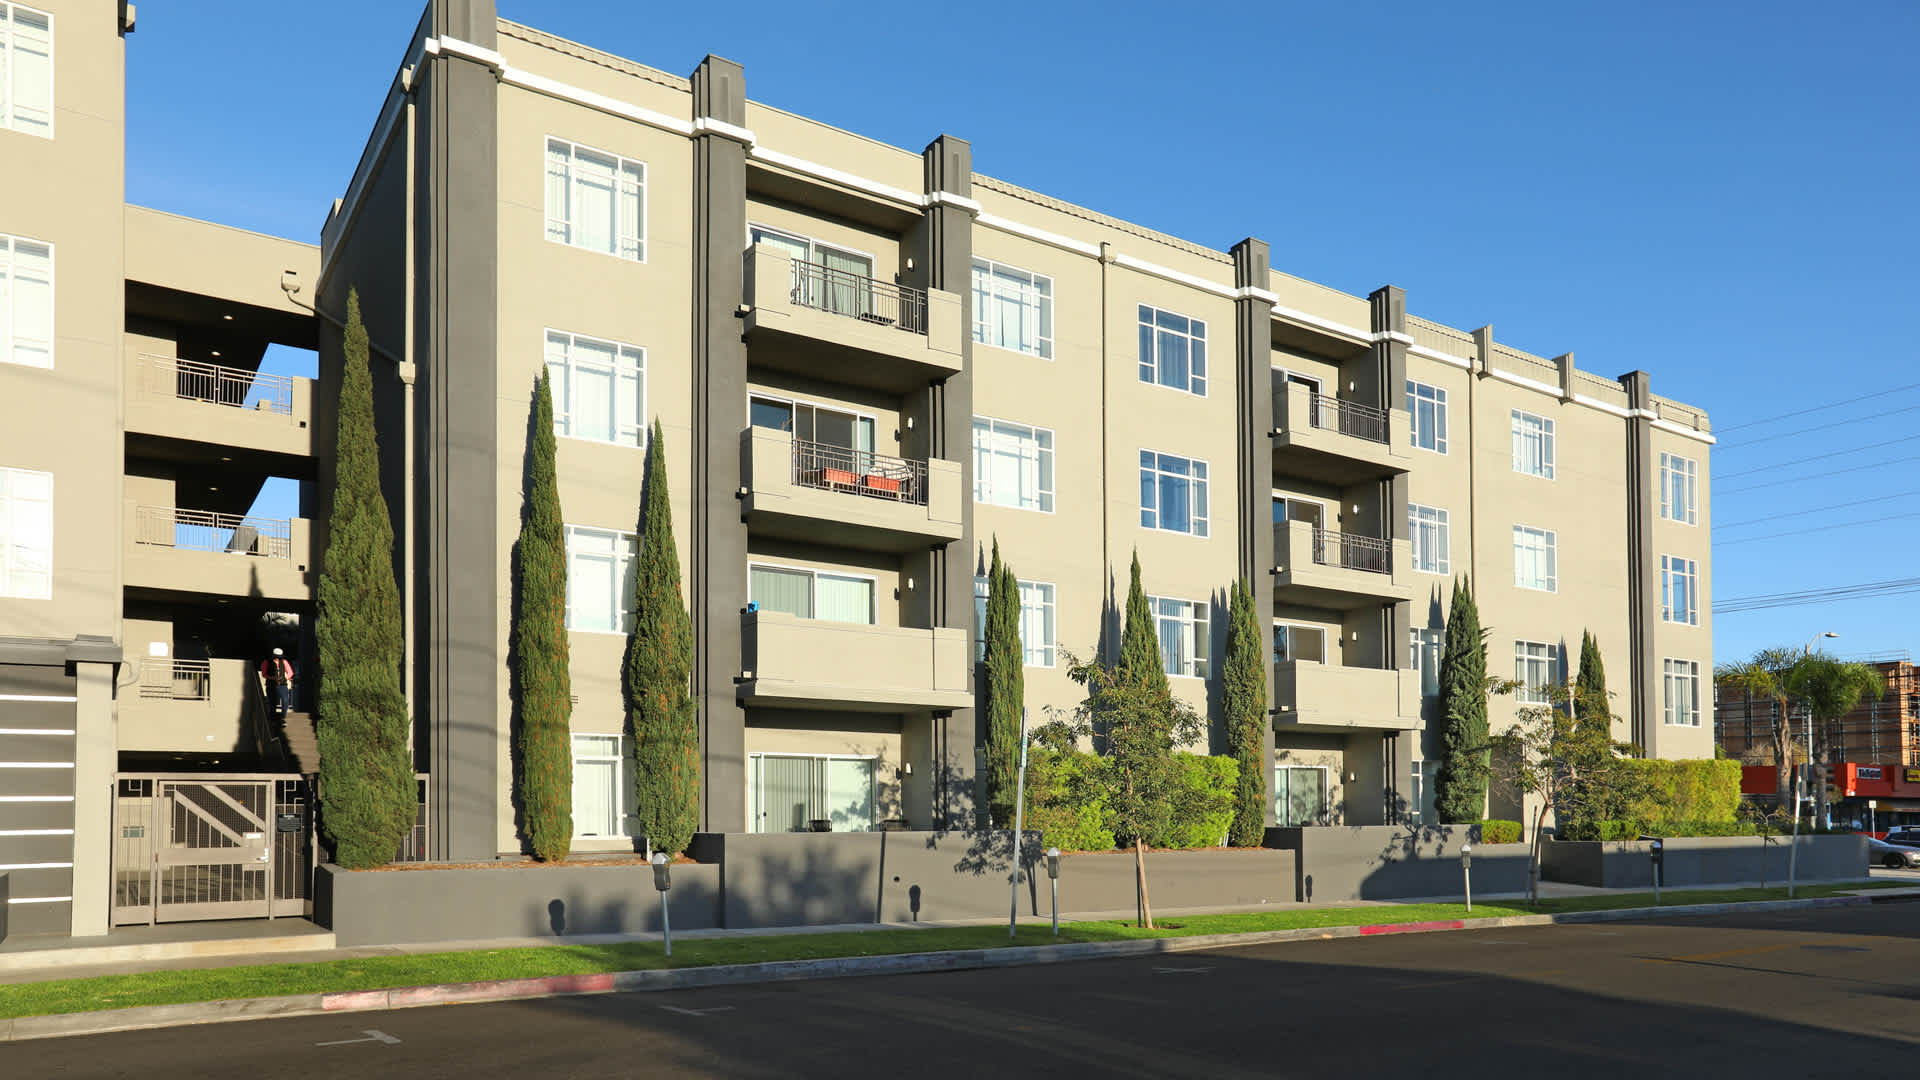 Victor On Venice Apartments Culver City 10001 Blvd Equityapartments